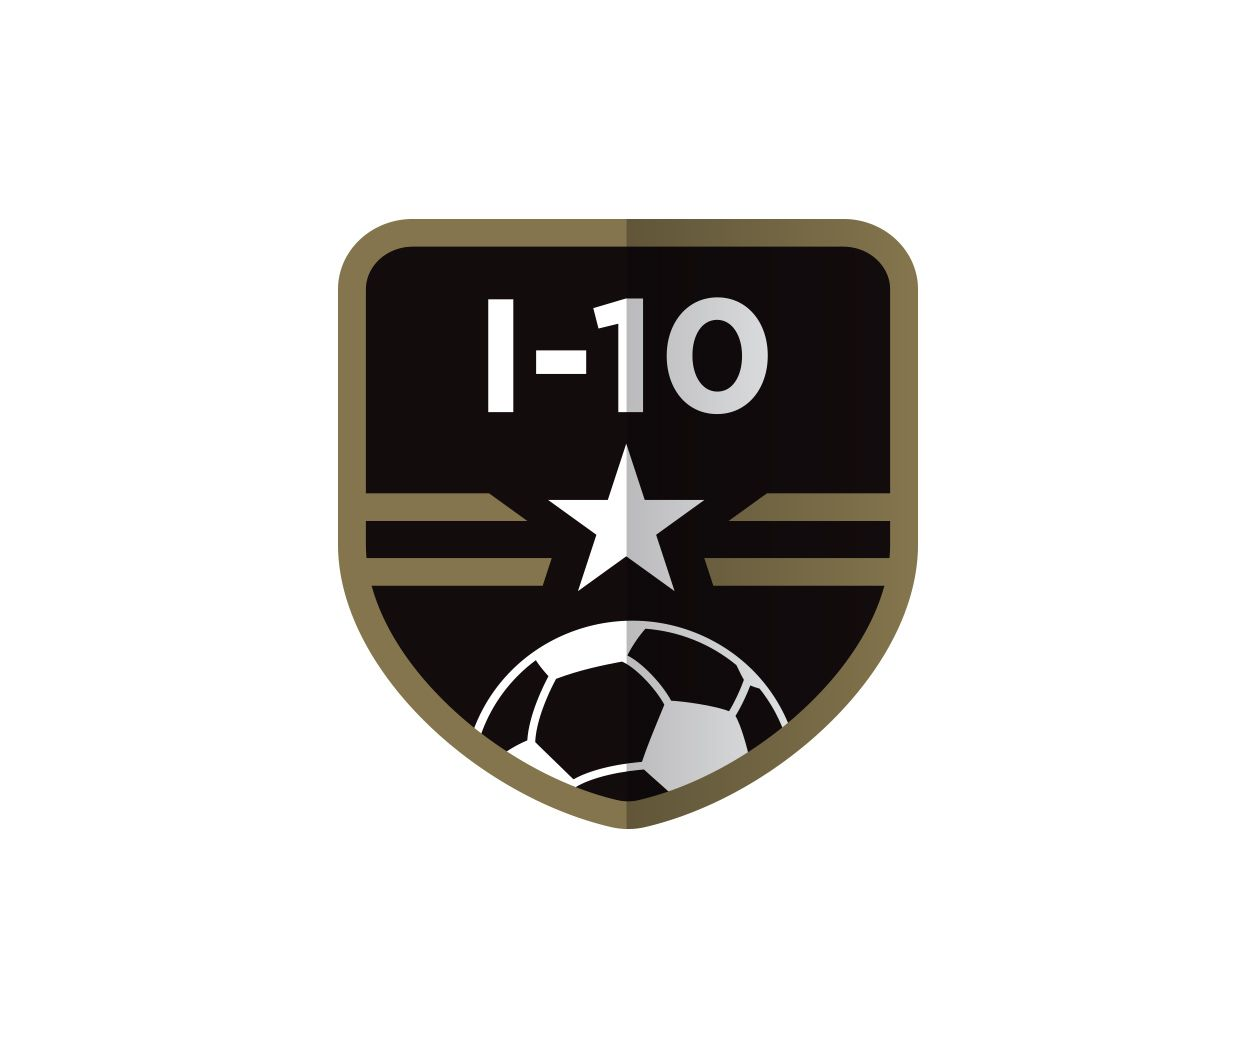 custom soccer crest design for i 10 futbol alliance by jordan fretz